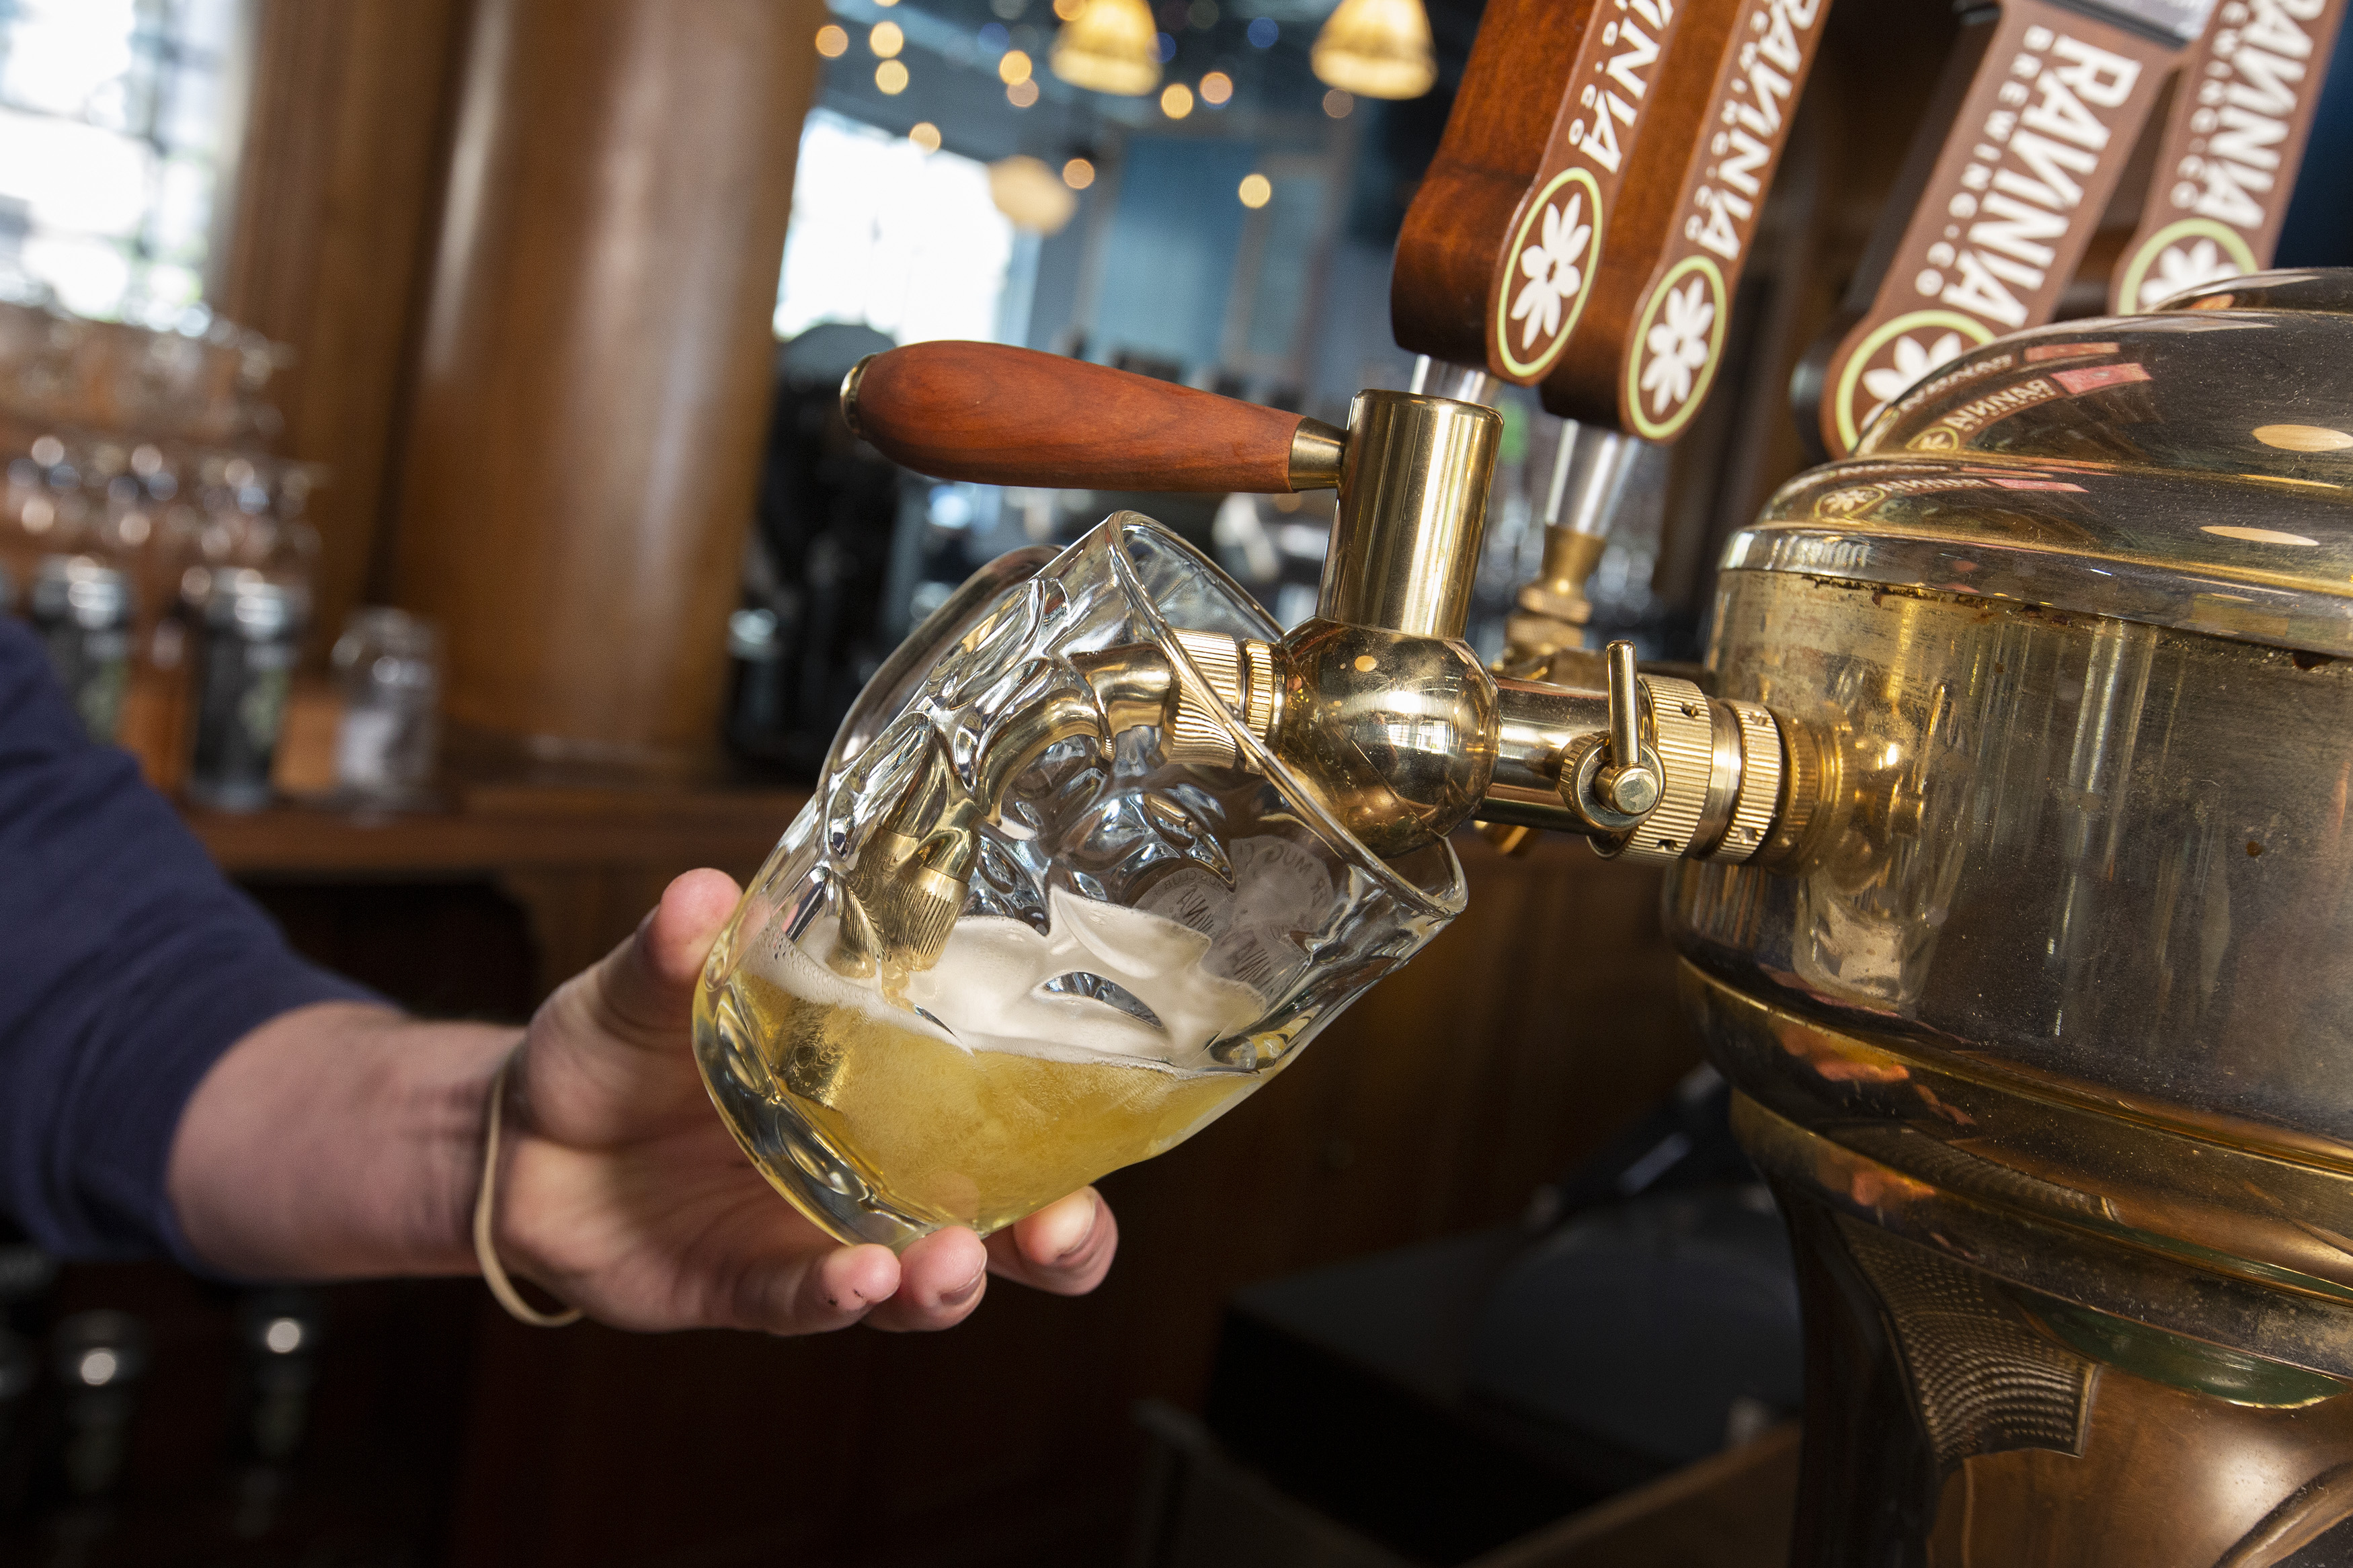 A person pours beer from a tap into a small glass.